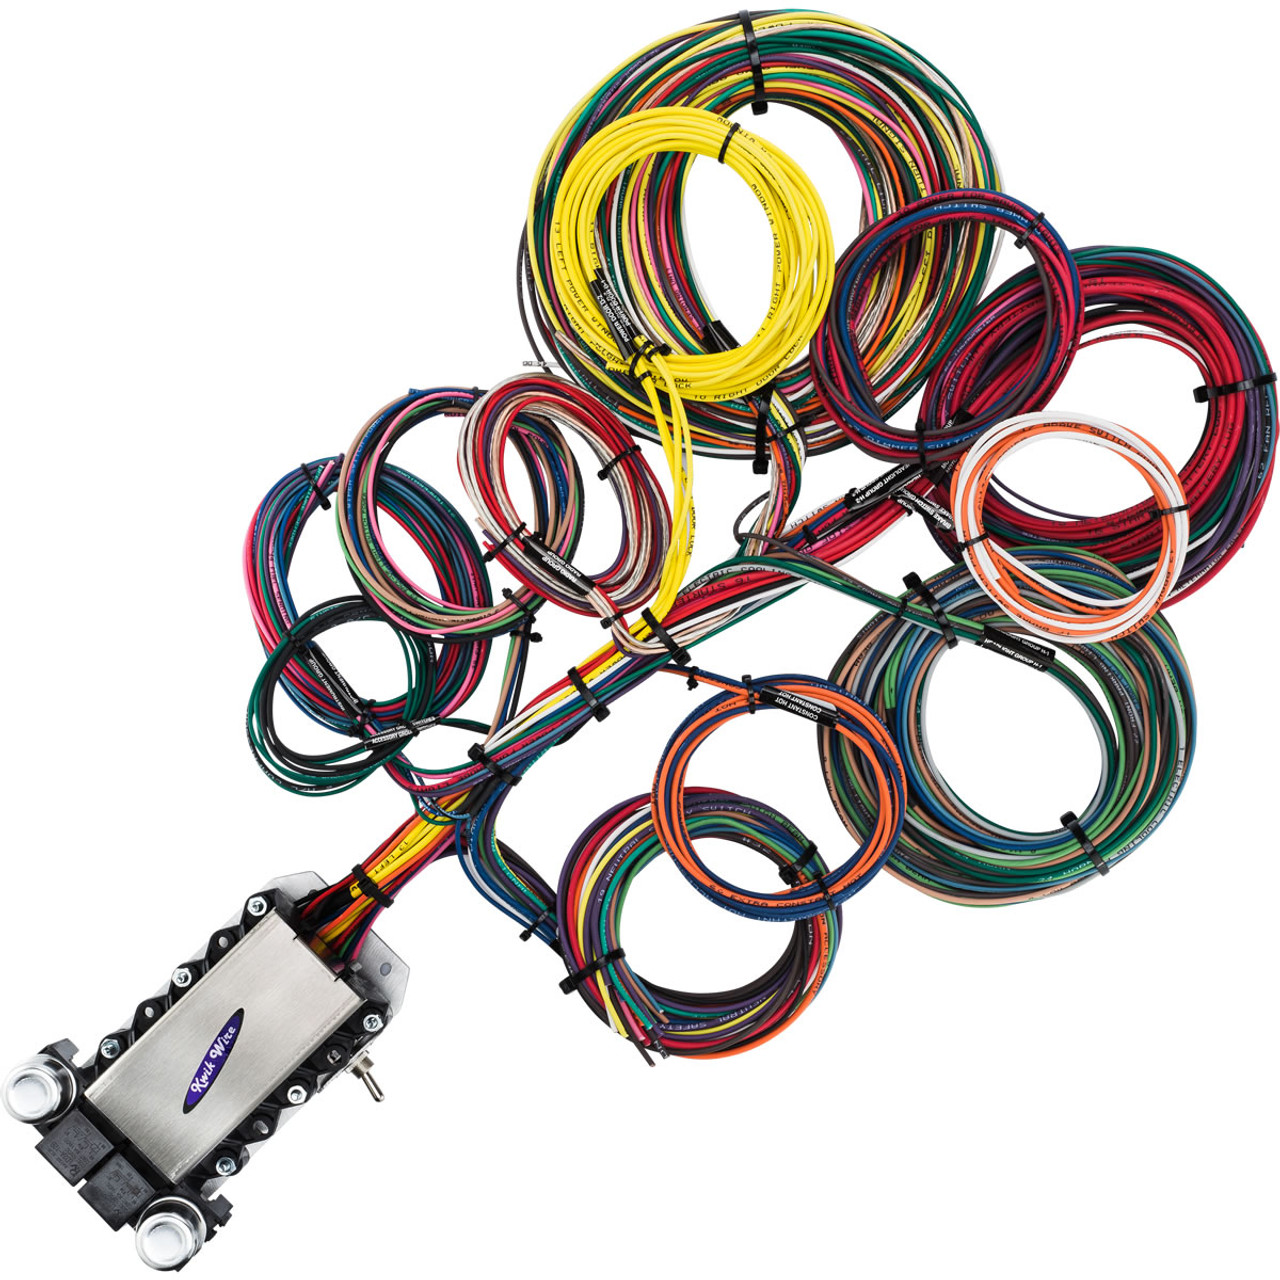 Ford Wiring Harness Restoration Wire Data Schema Buick 1957 Electrical Diagrams Rh Cytrus Co